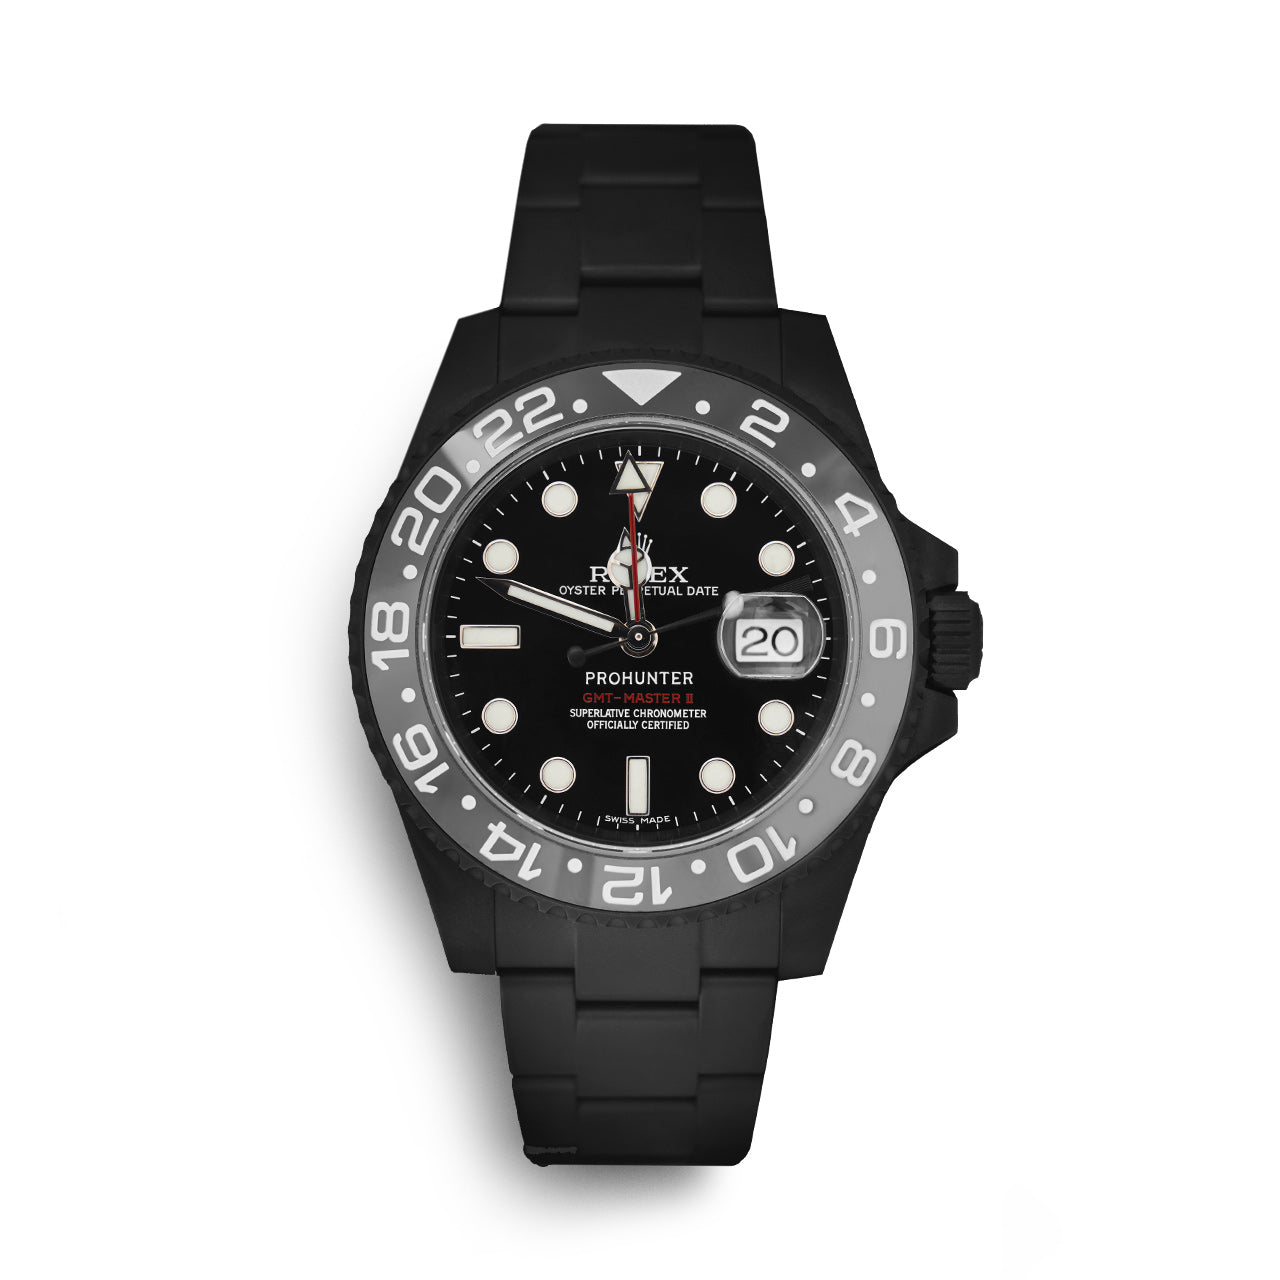 Pro Hunter GMT Master II Stealth Watch